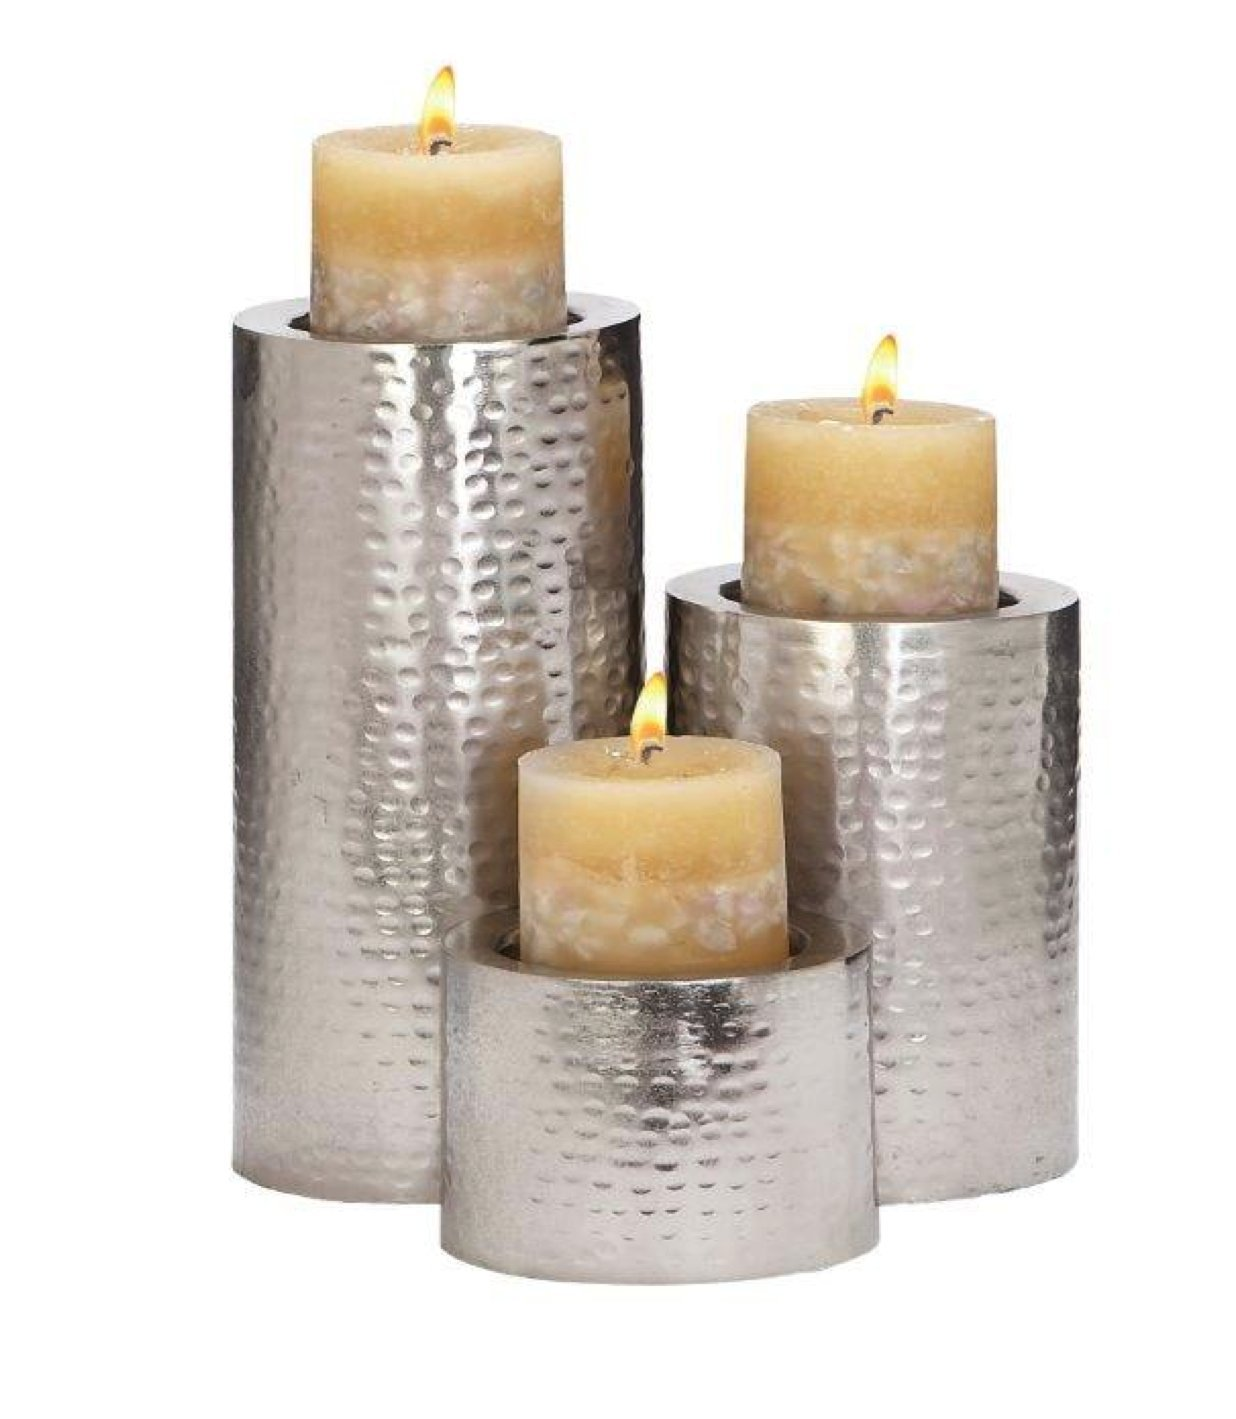 ORE International 34569 Metal Candle Holder, 11-Inch, 7-Inch, 4-Inch, Set of 3